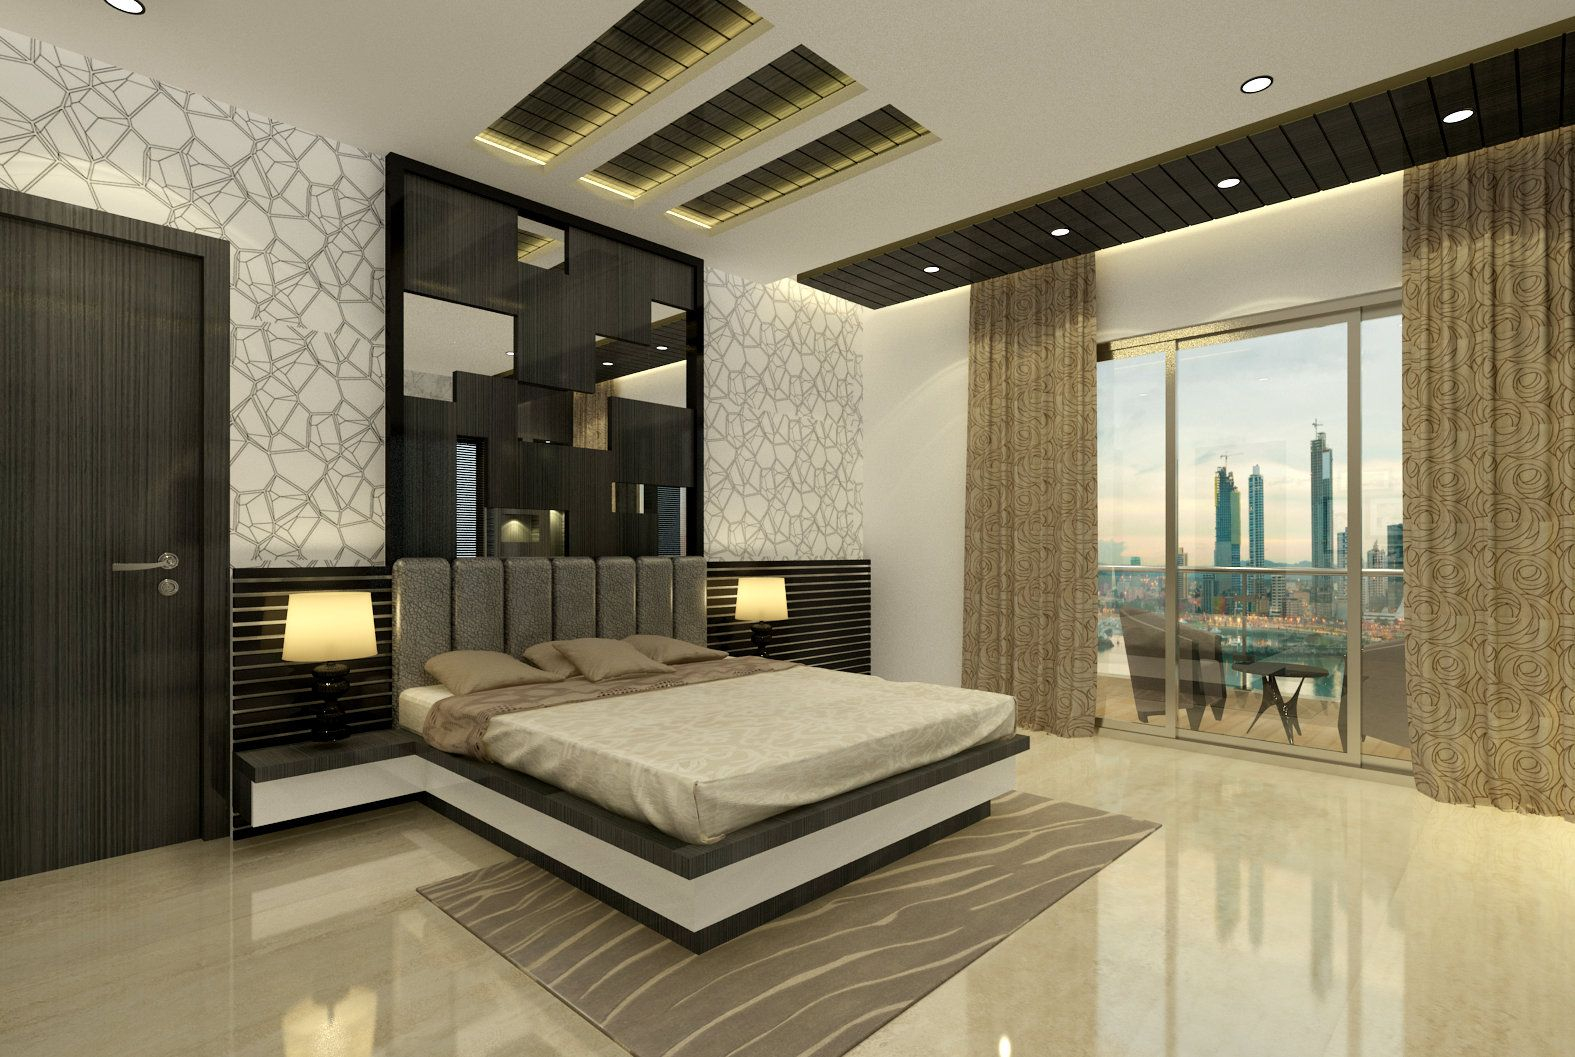 Master Bedroom We Design And Execute The Same Contact Us For All